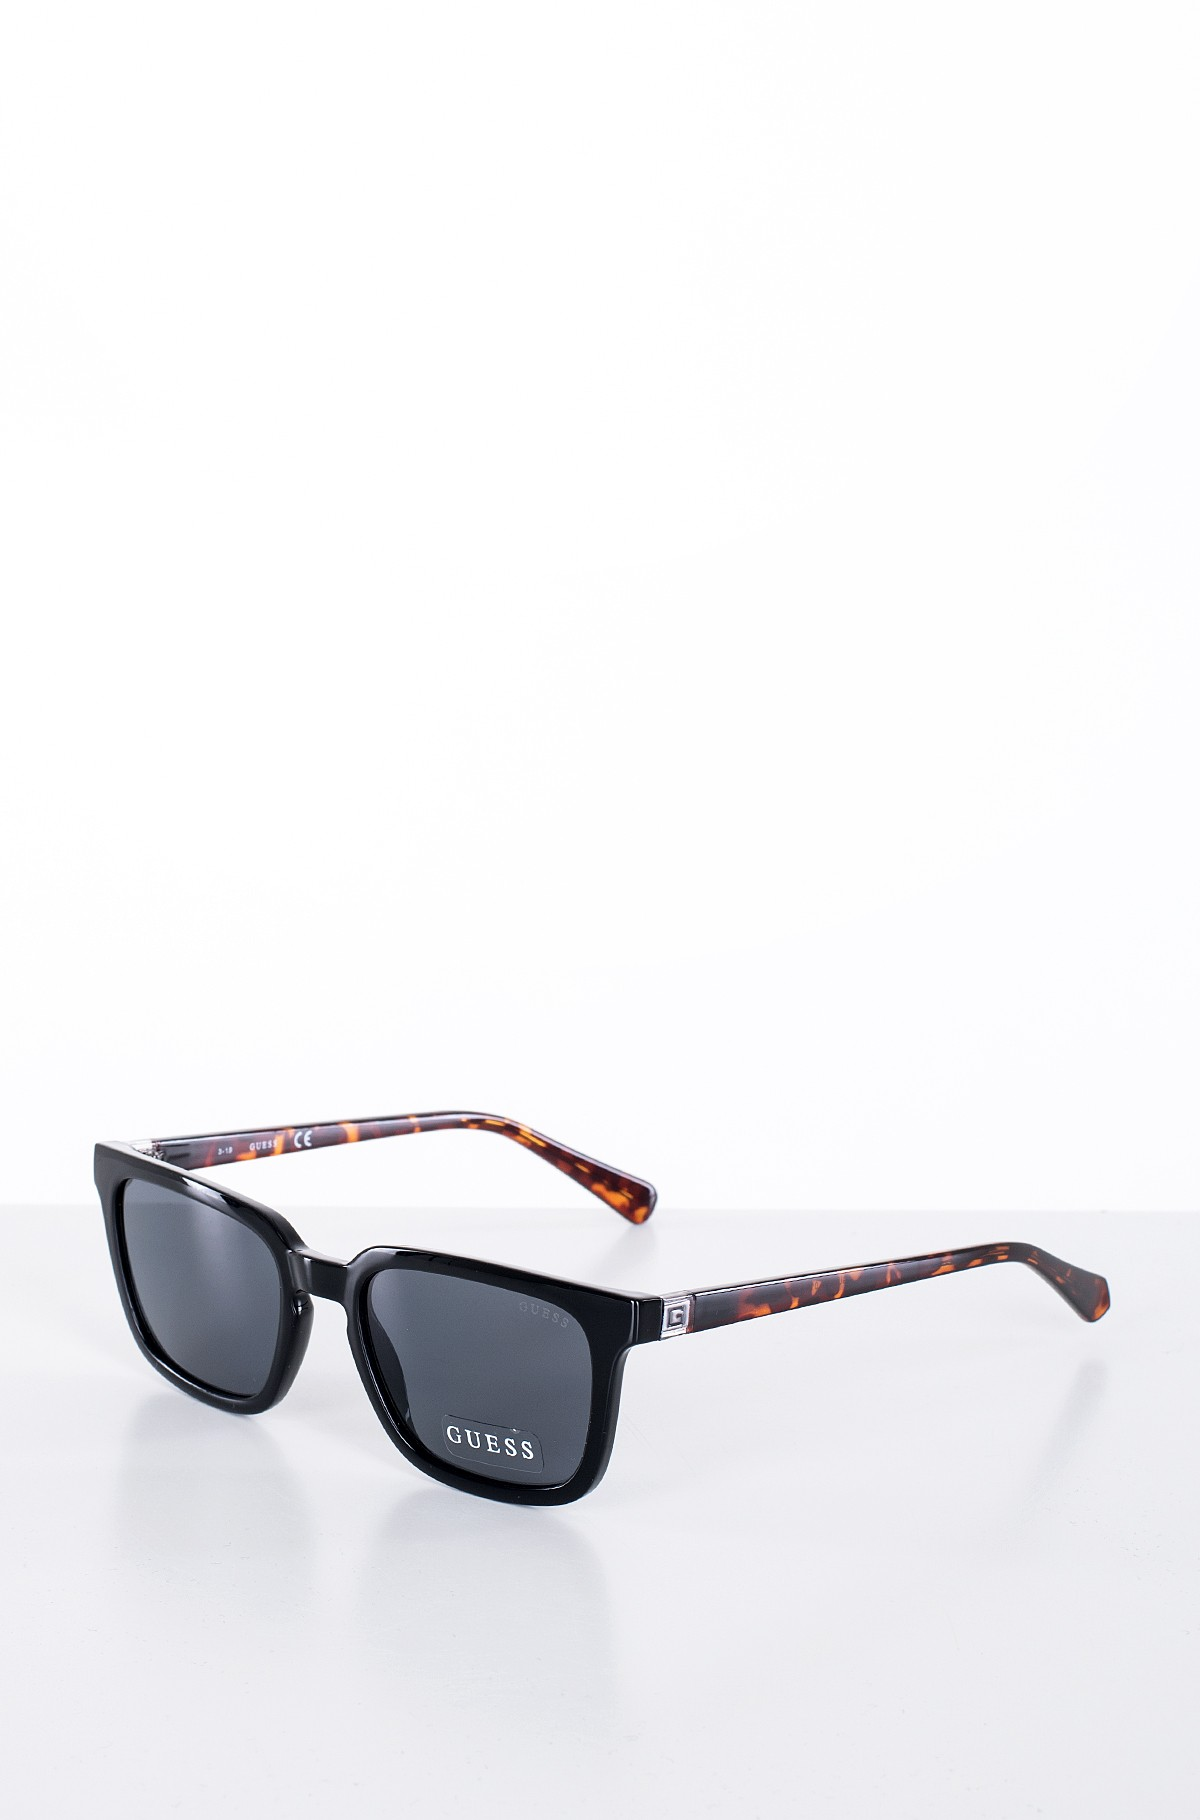 Sunglasses 6933-full-2